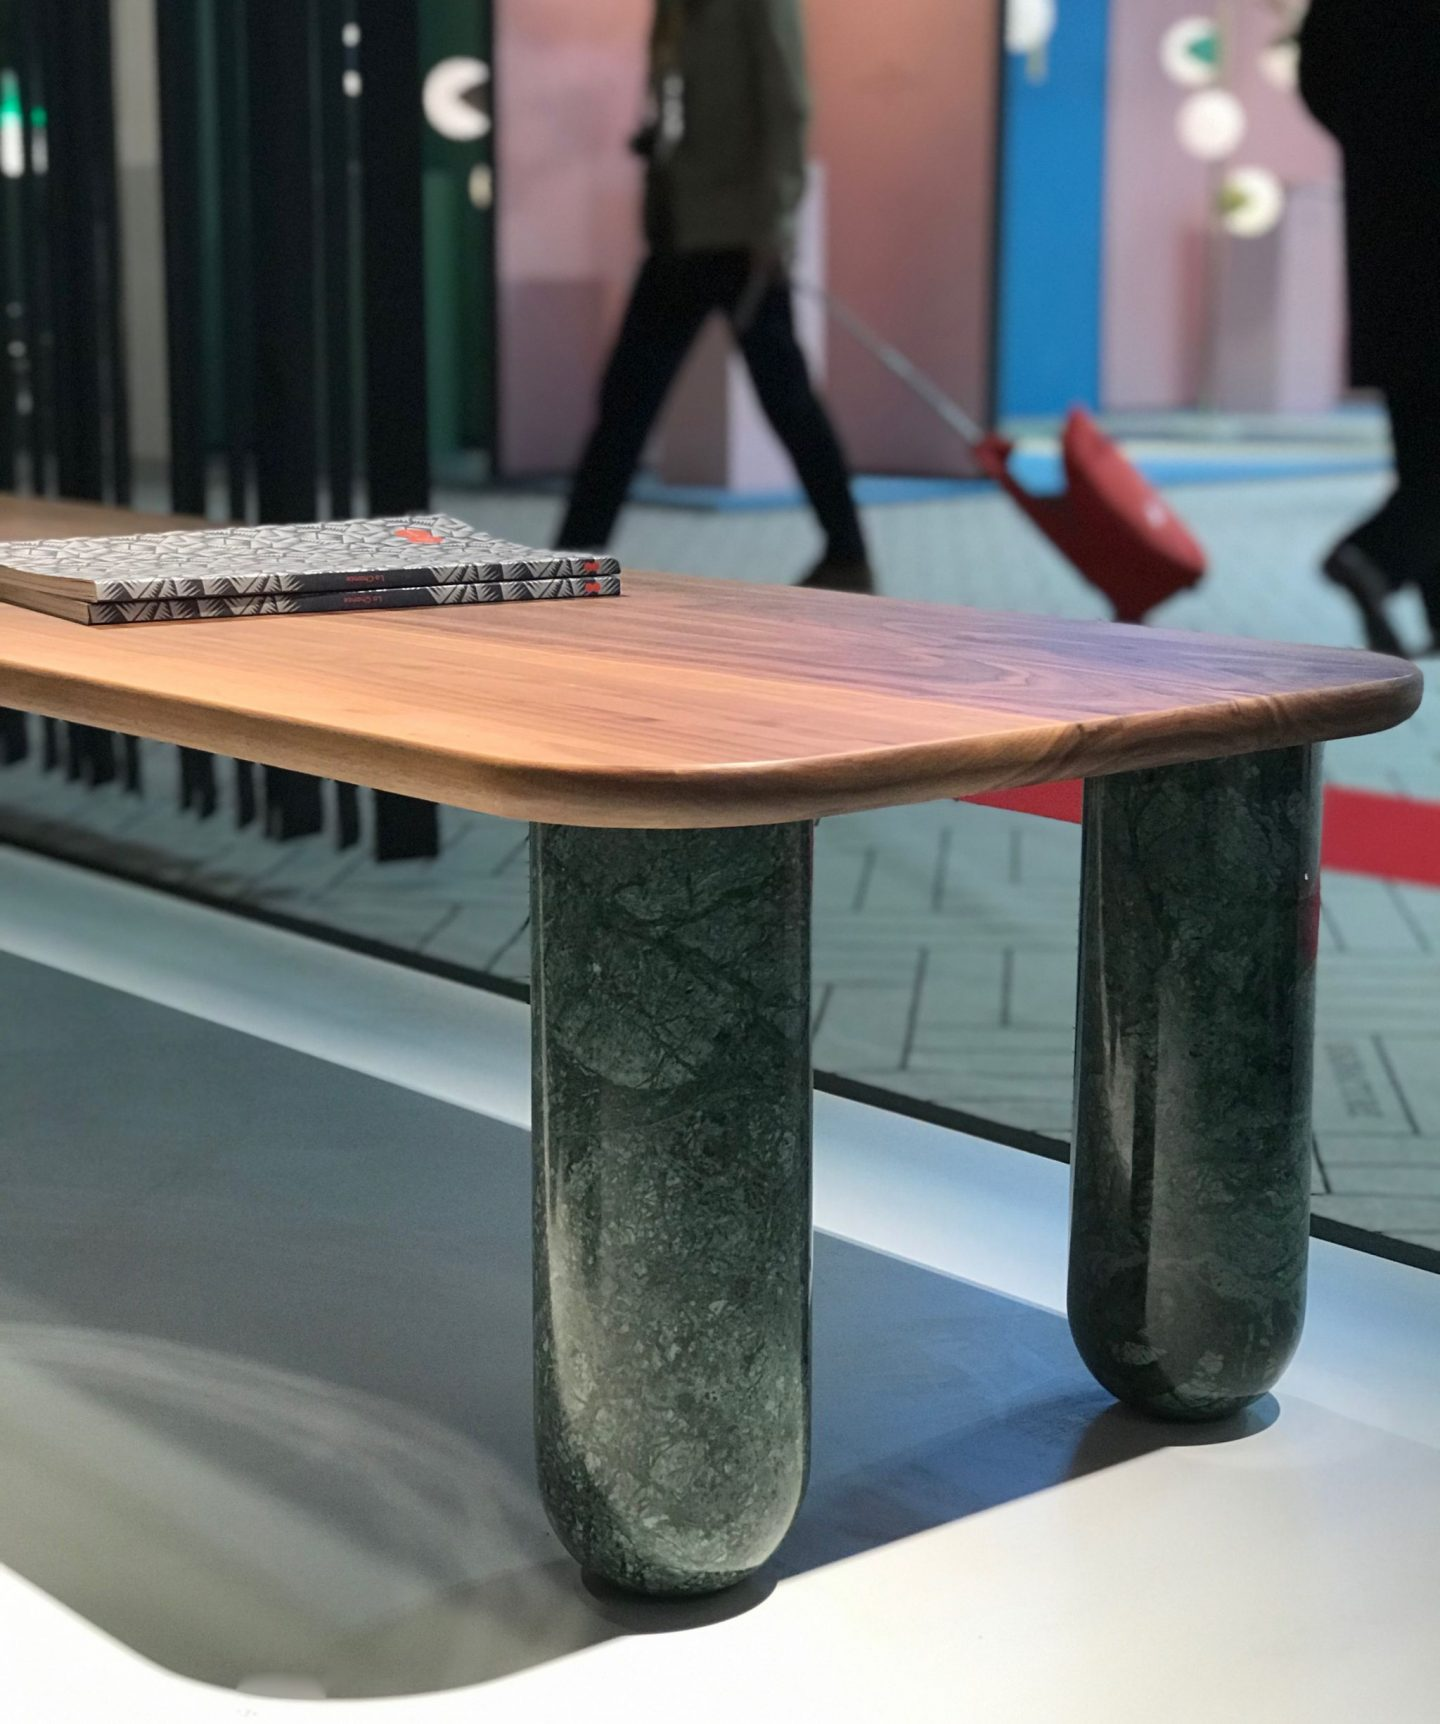 colour and form from Maison & Objet, green marble, marble trend, Hello Peagreen